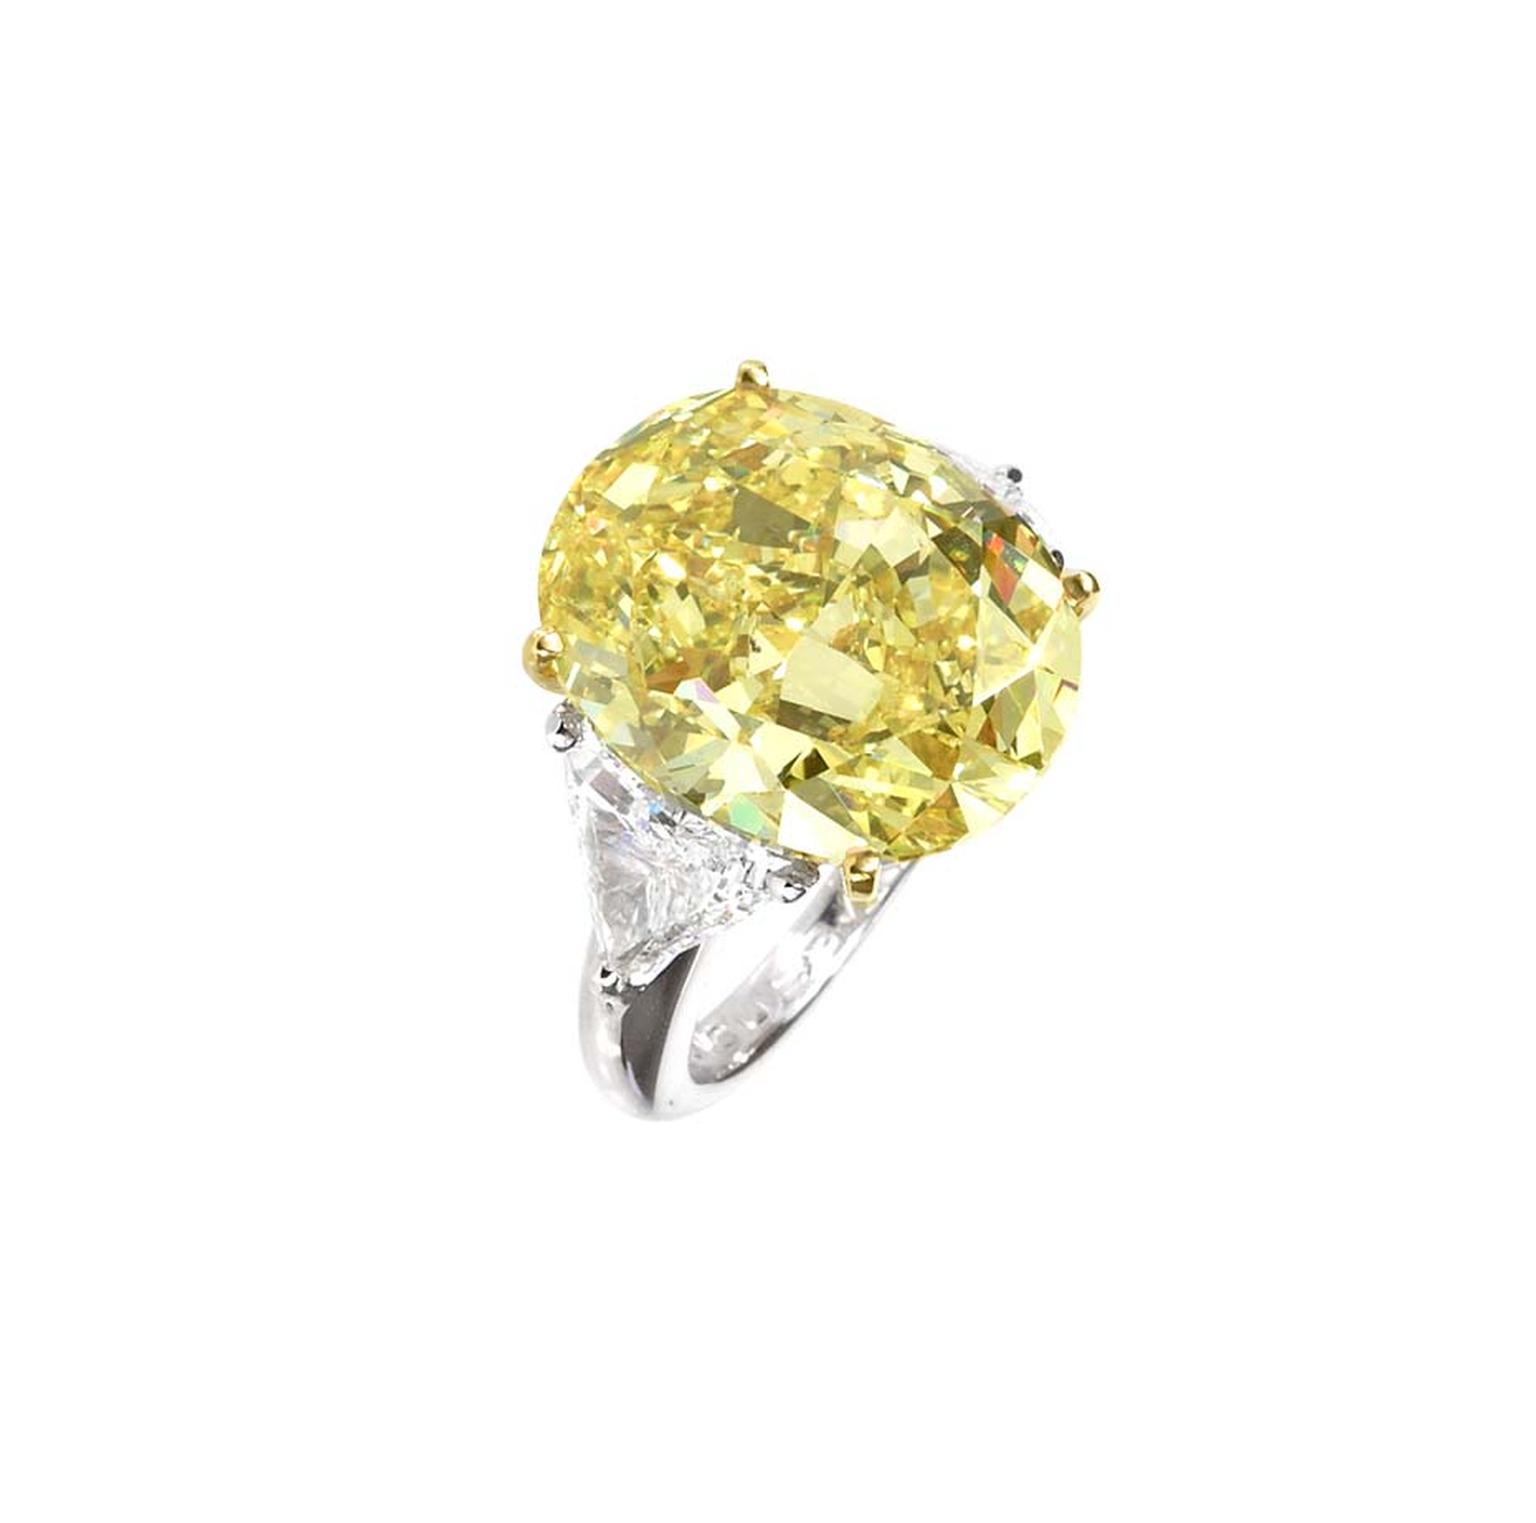 Big engagement ring_Moussaieff_Oval Yellow diamond ring.jpg